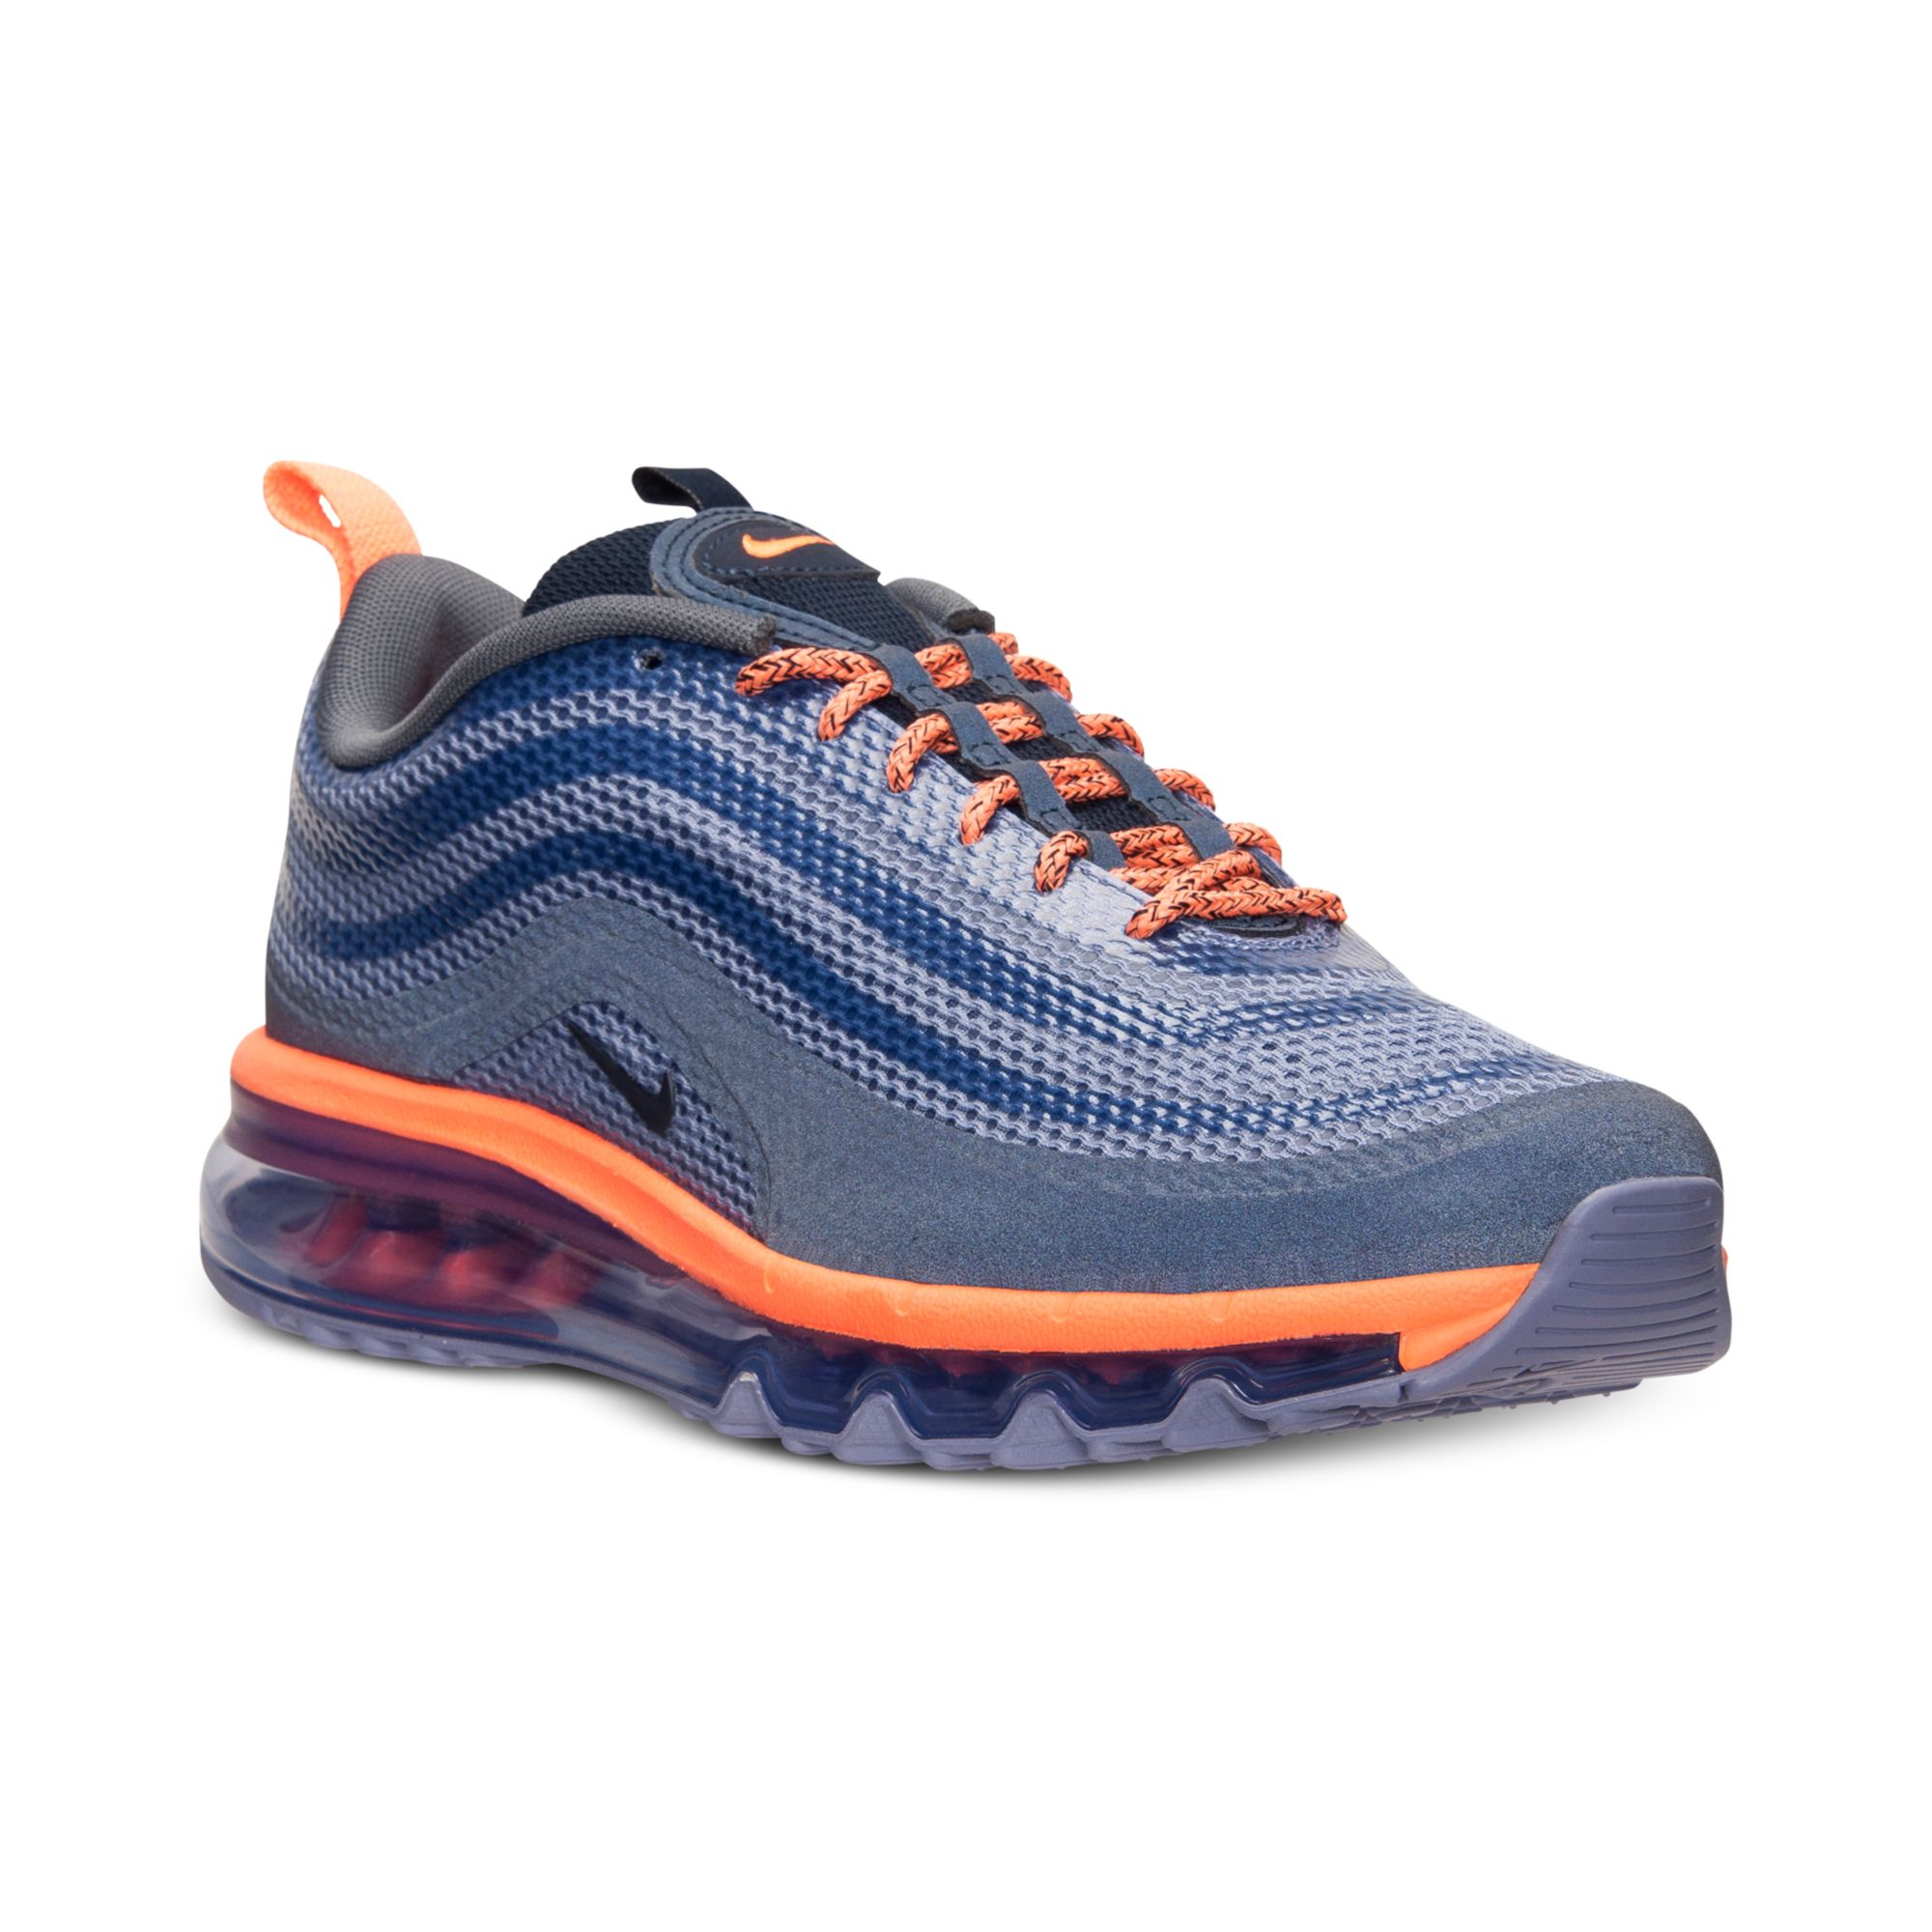 official photos 8a573 1230a Nike Mens Air Max 97 Hyp Running Sneakers From Finish Line in Blue ...